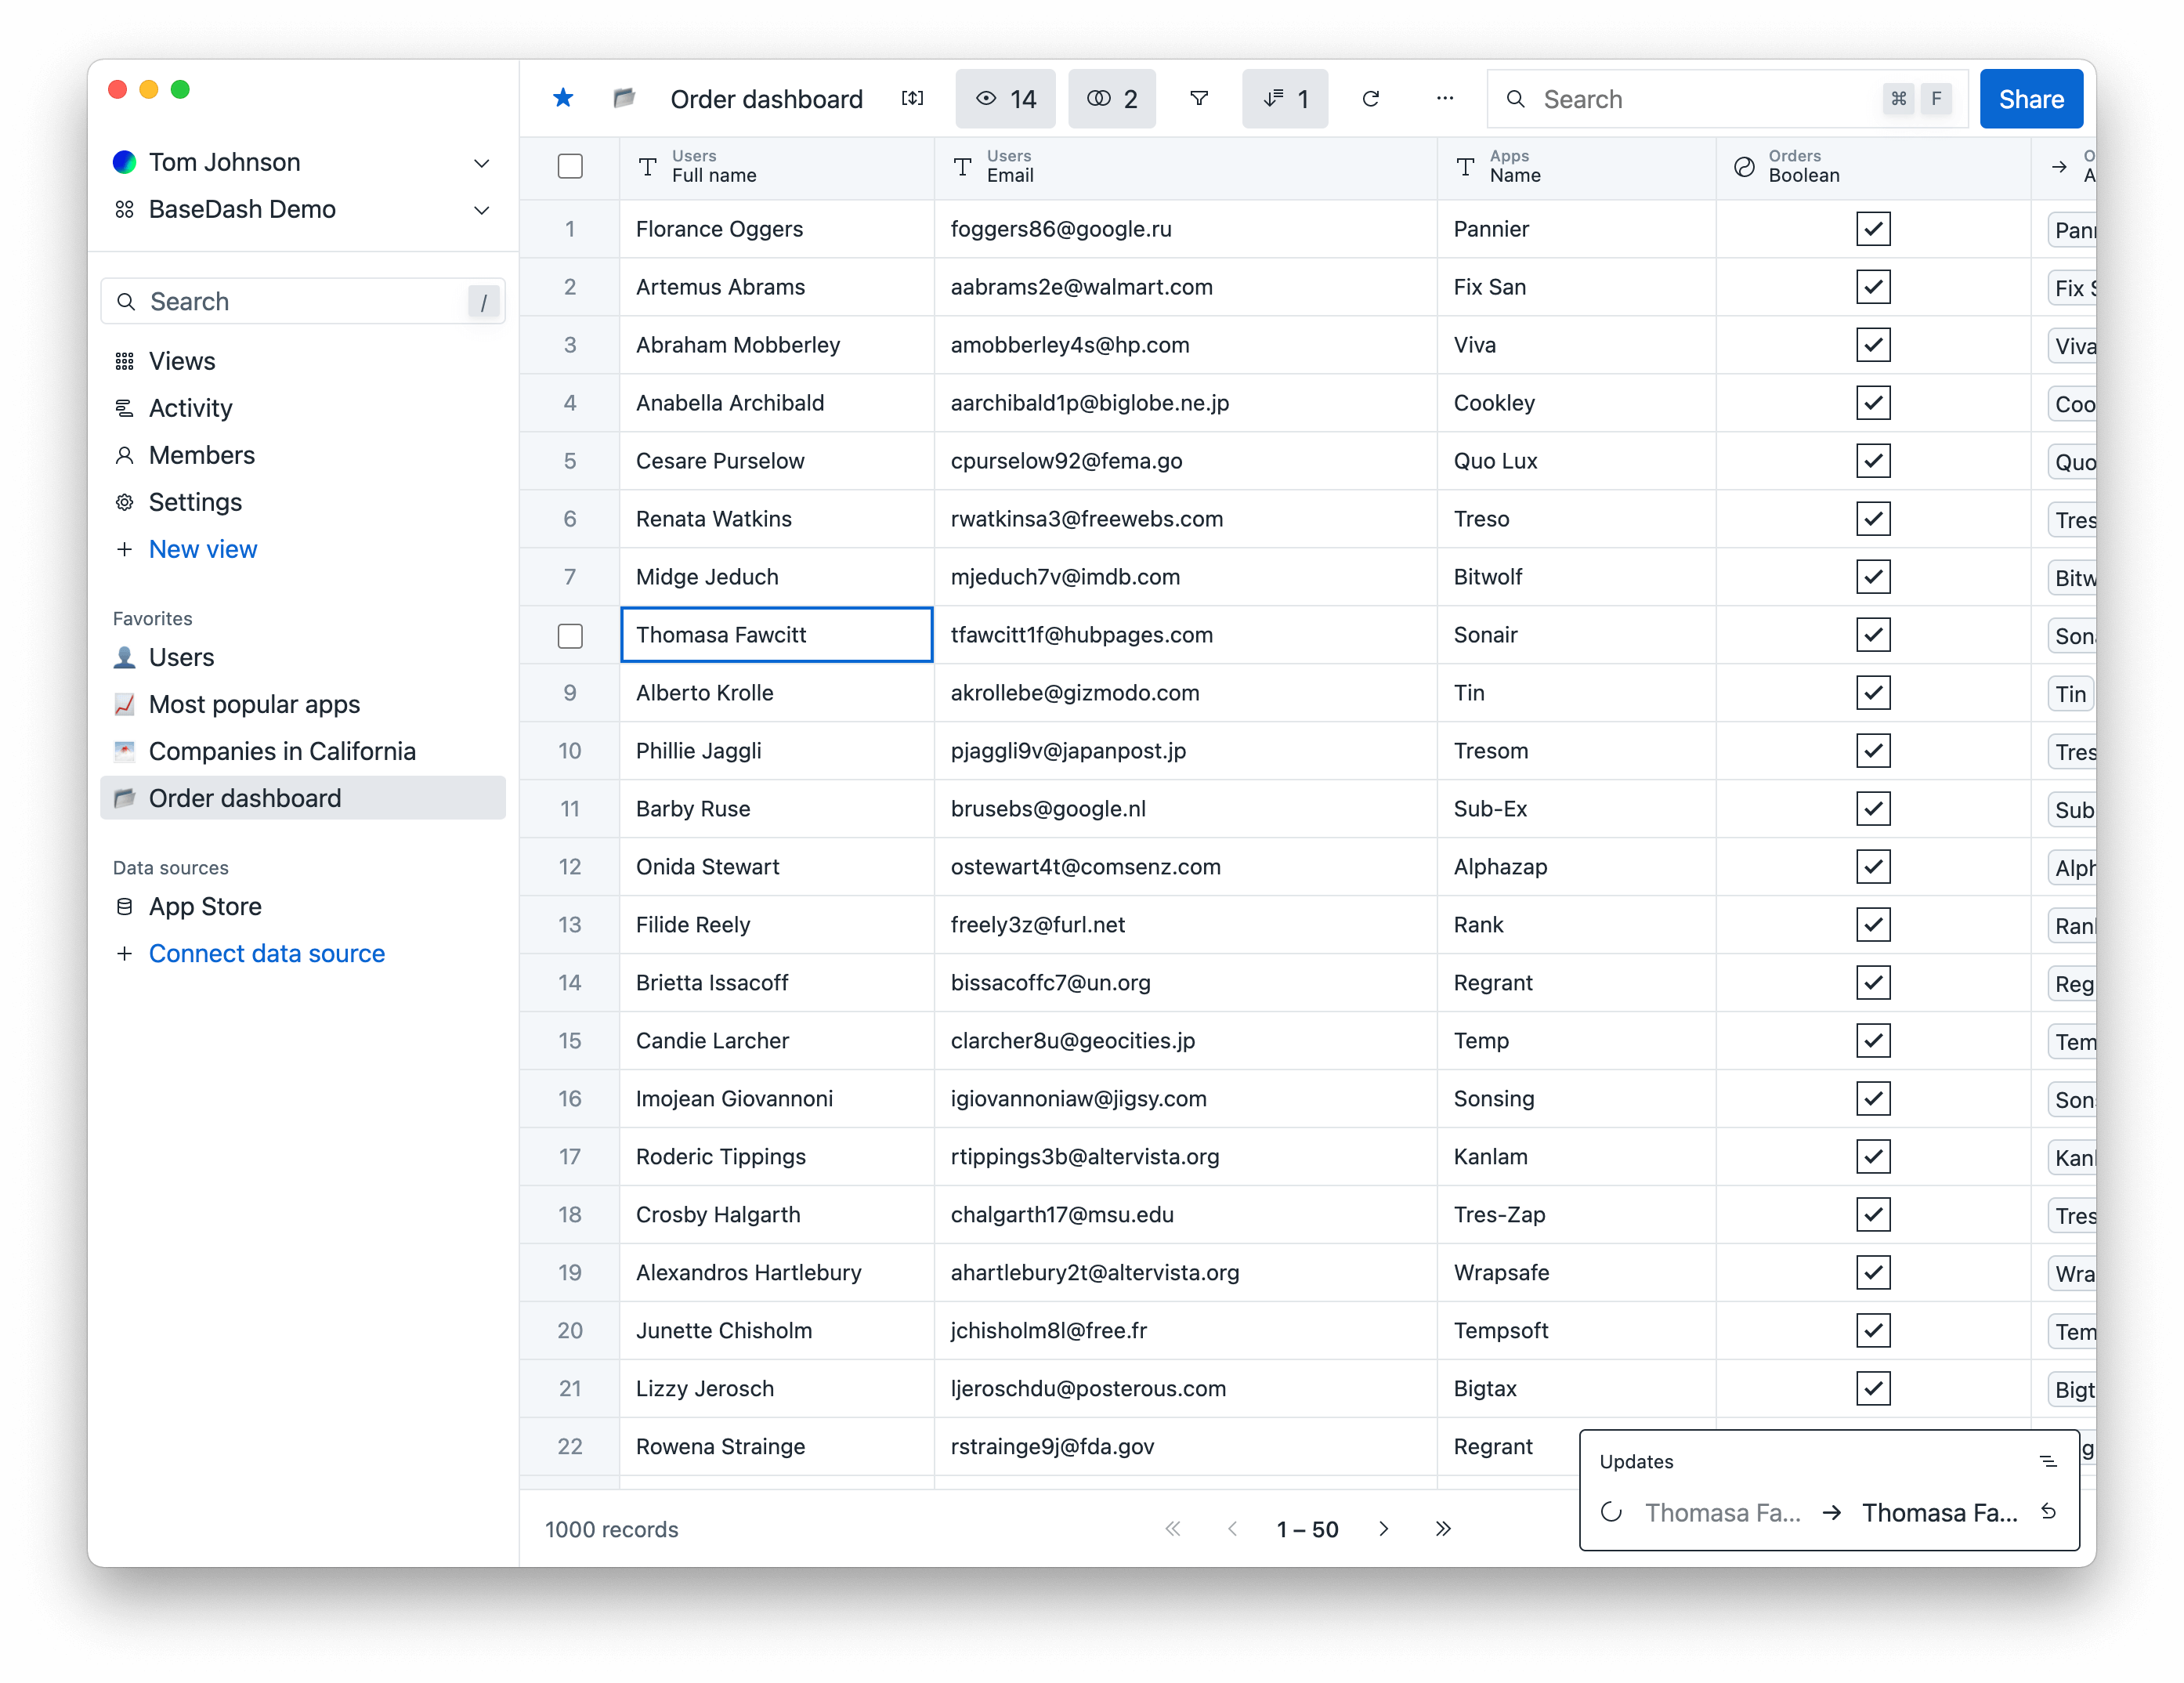 A screenshot of BaseDash, including a database table with user data